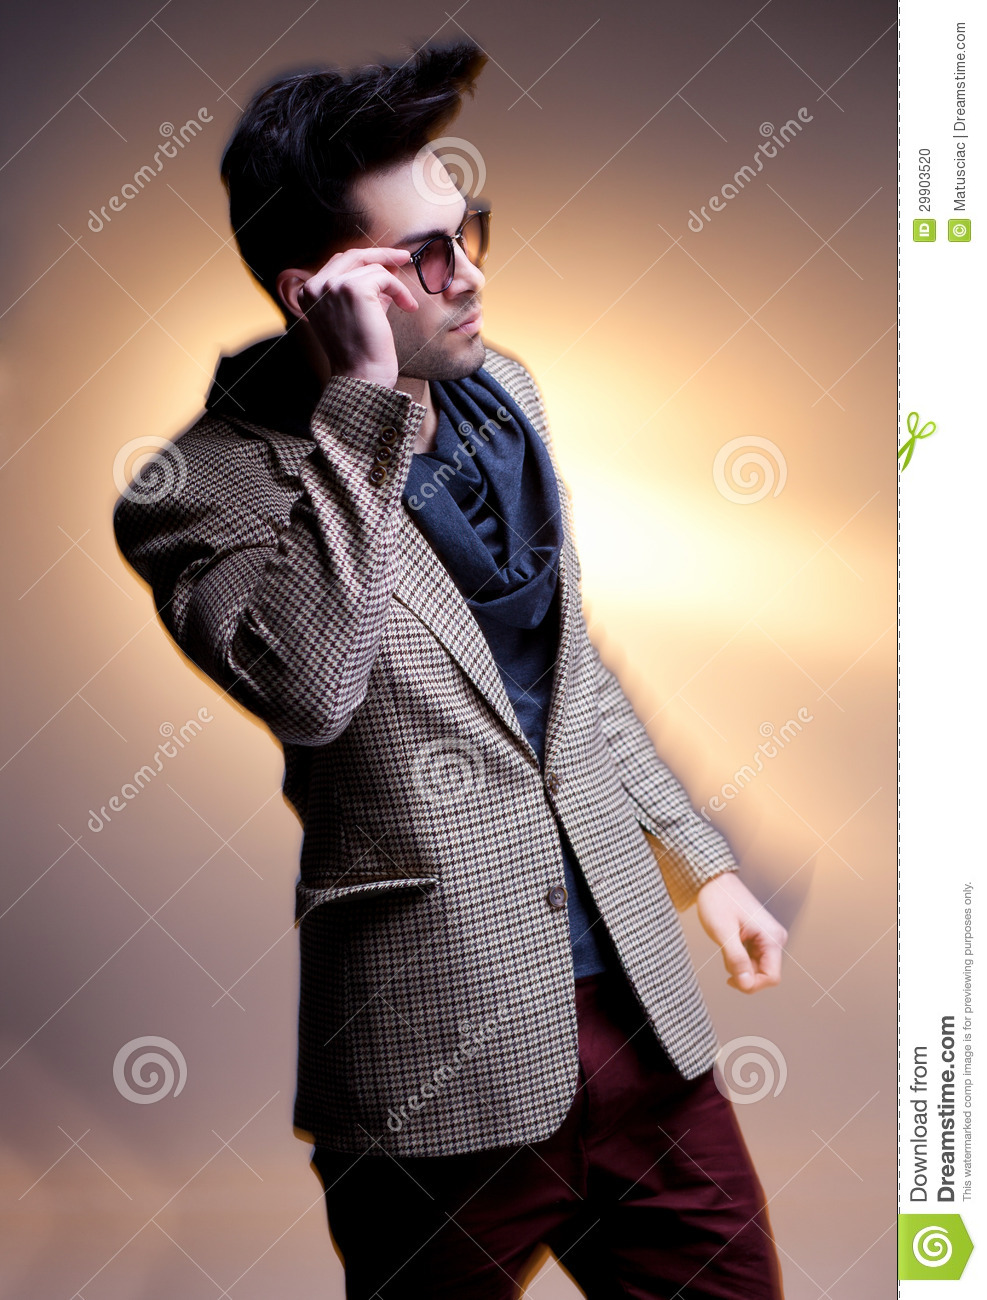 Fashion Man Model Dressed Casual Posing Dramatic Stock